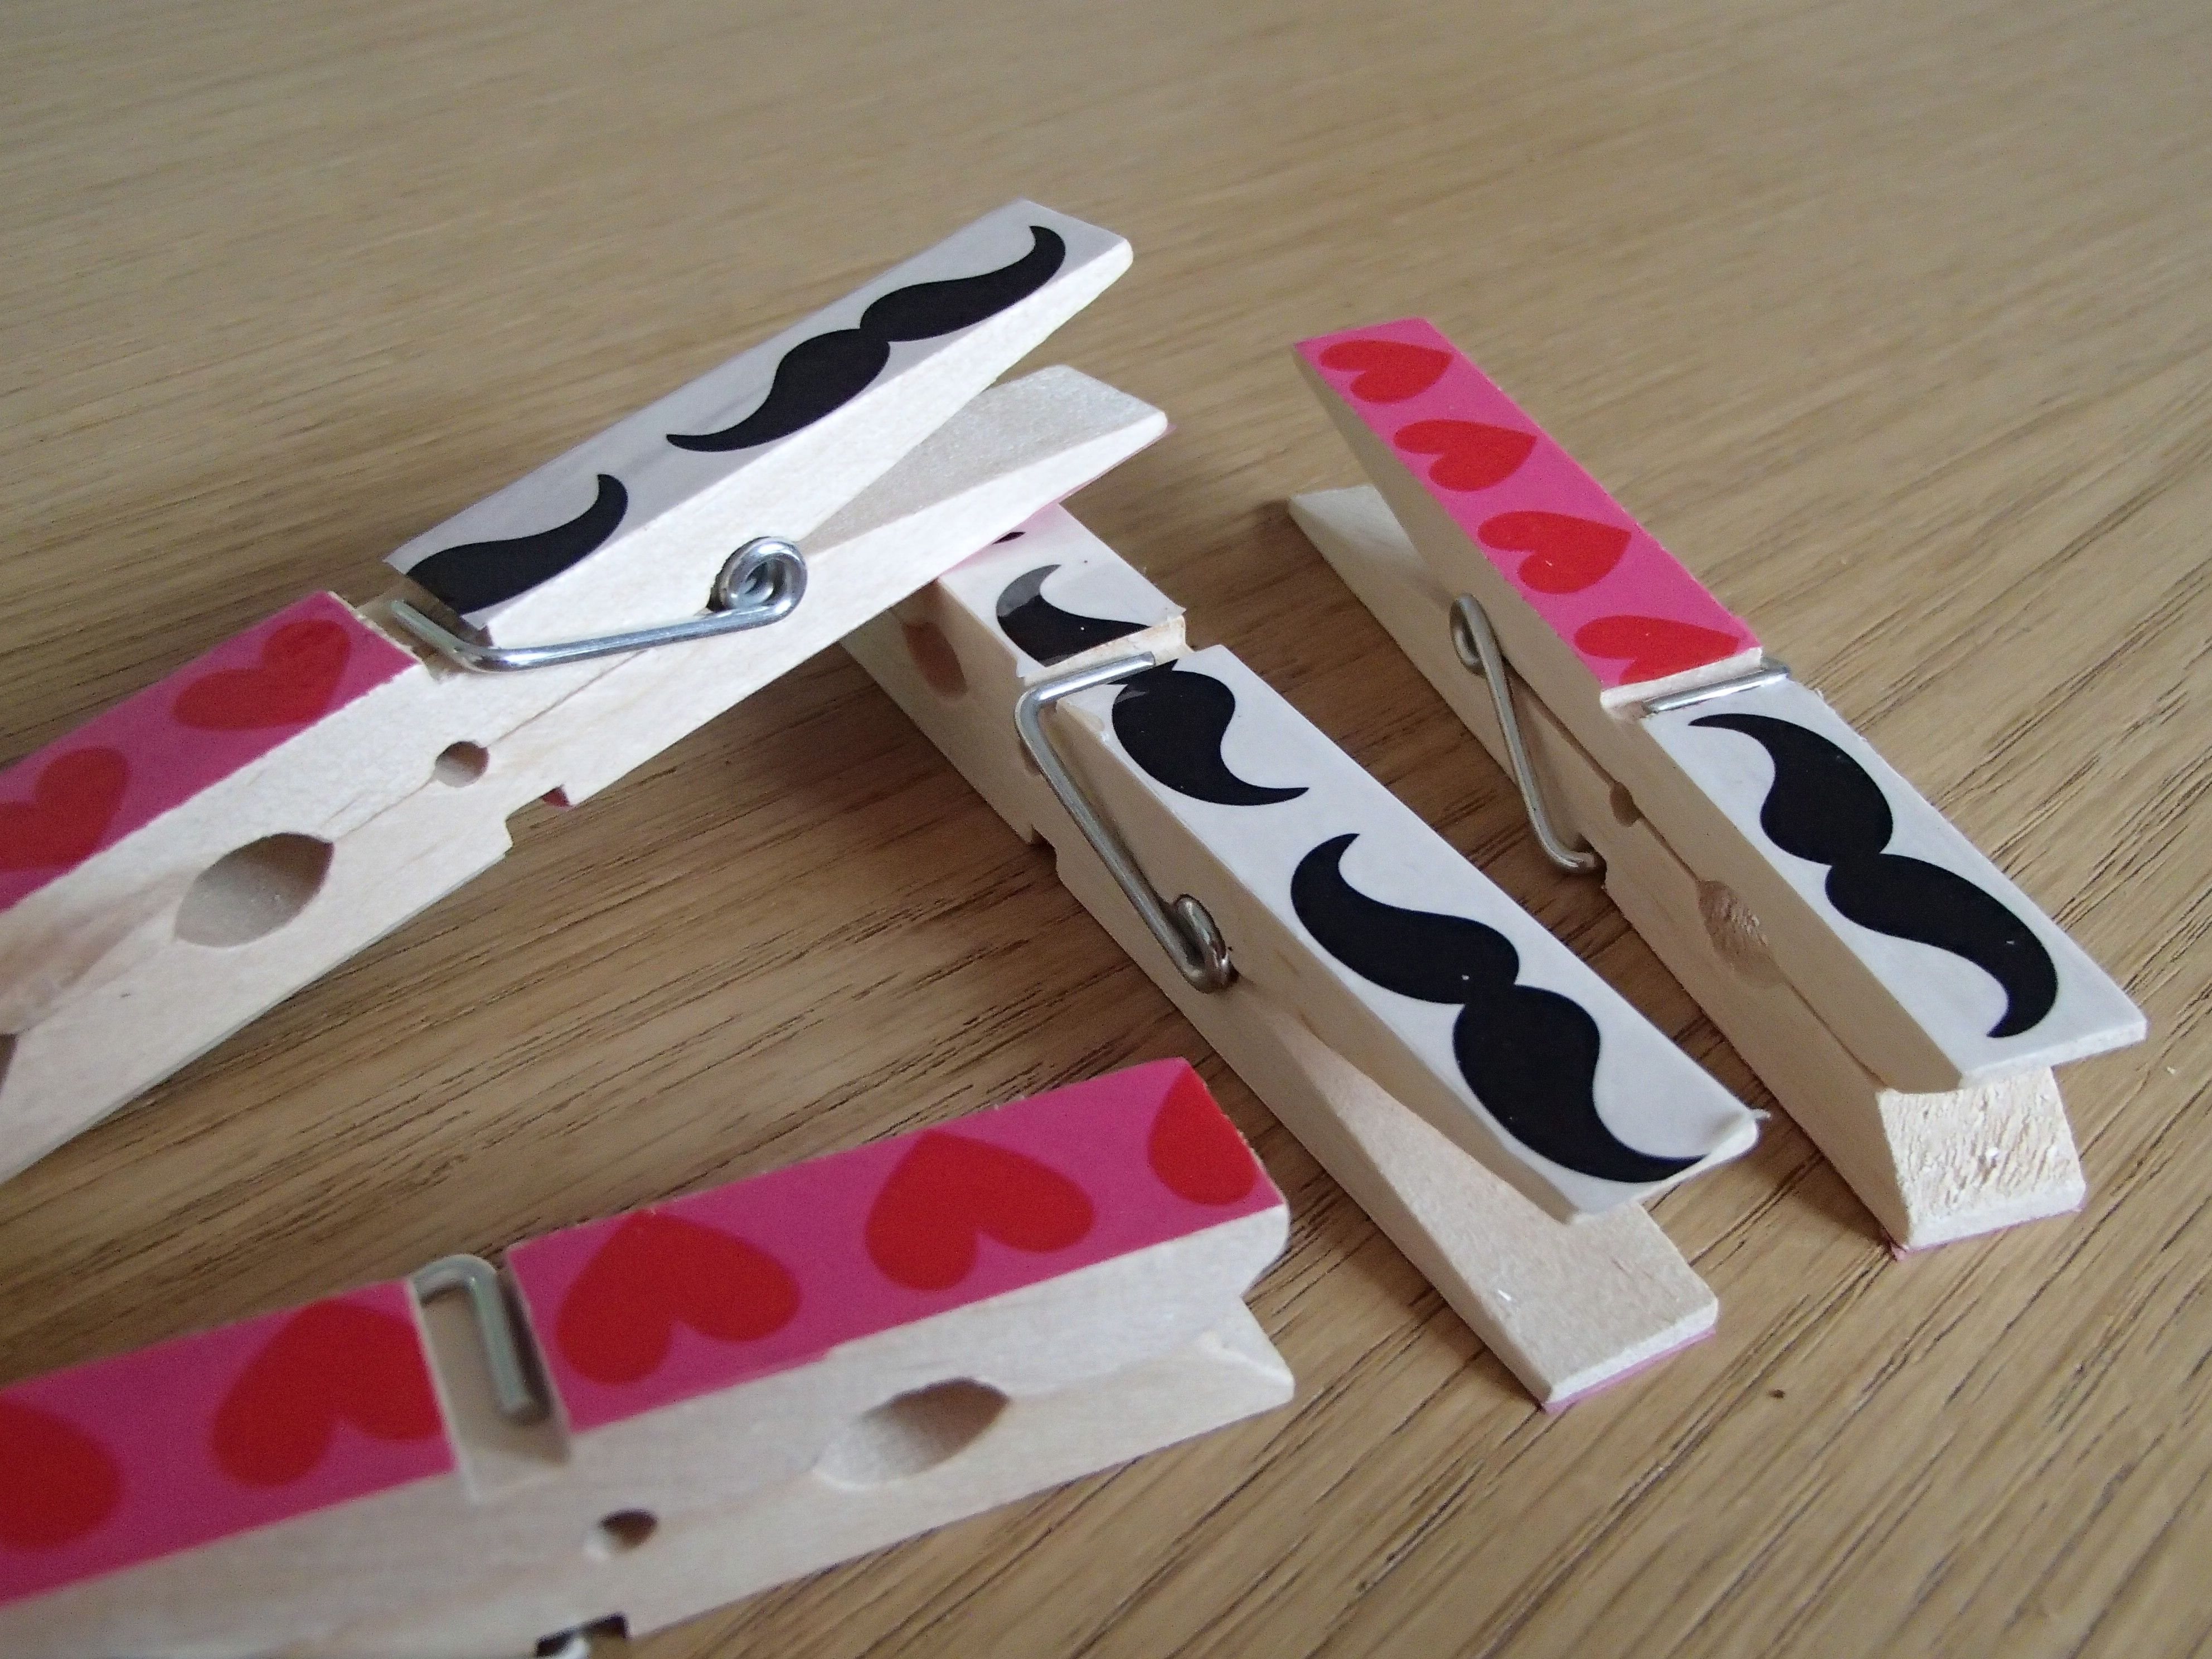 DIY Moustache and hearts on clothespins - by archiLAURA